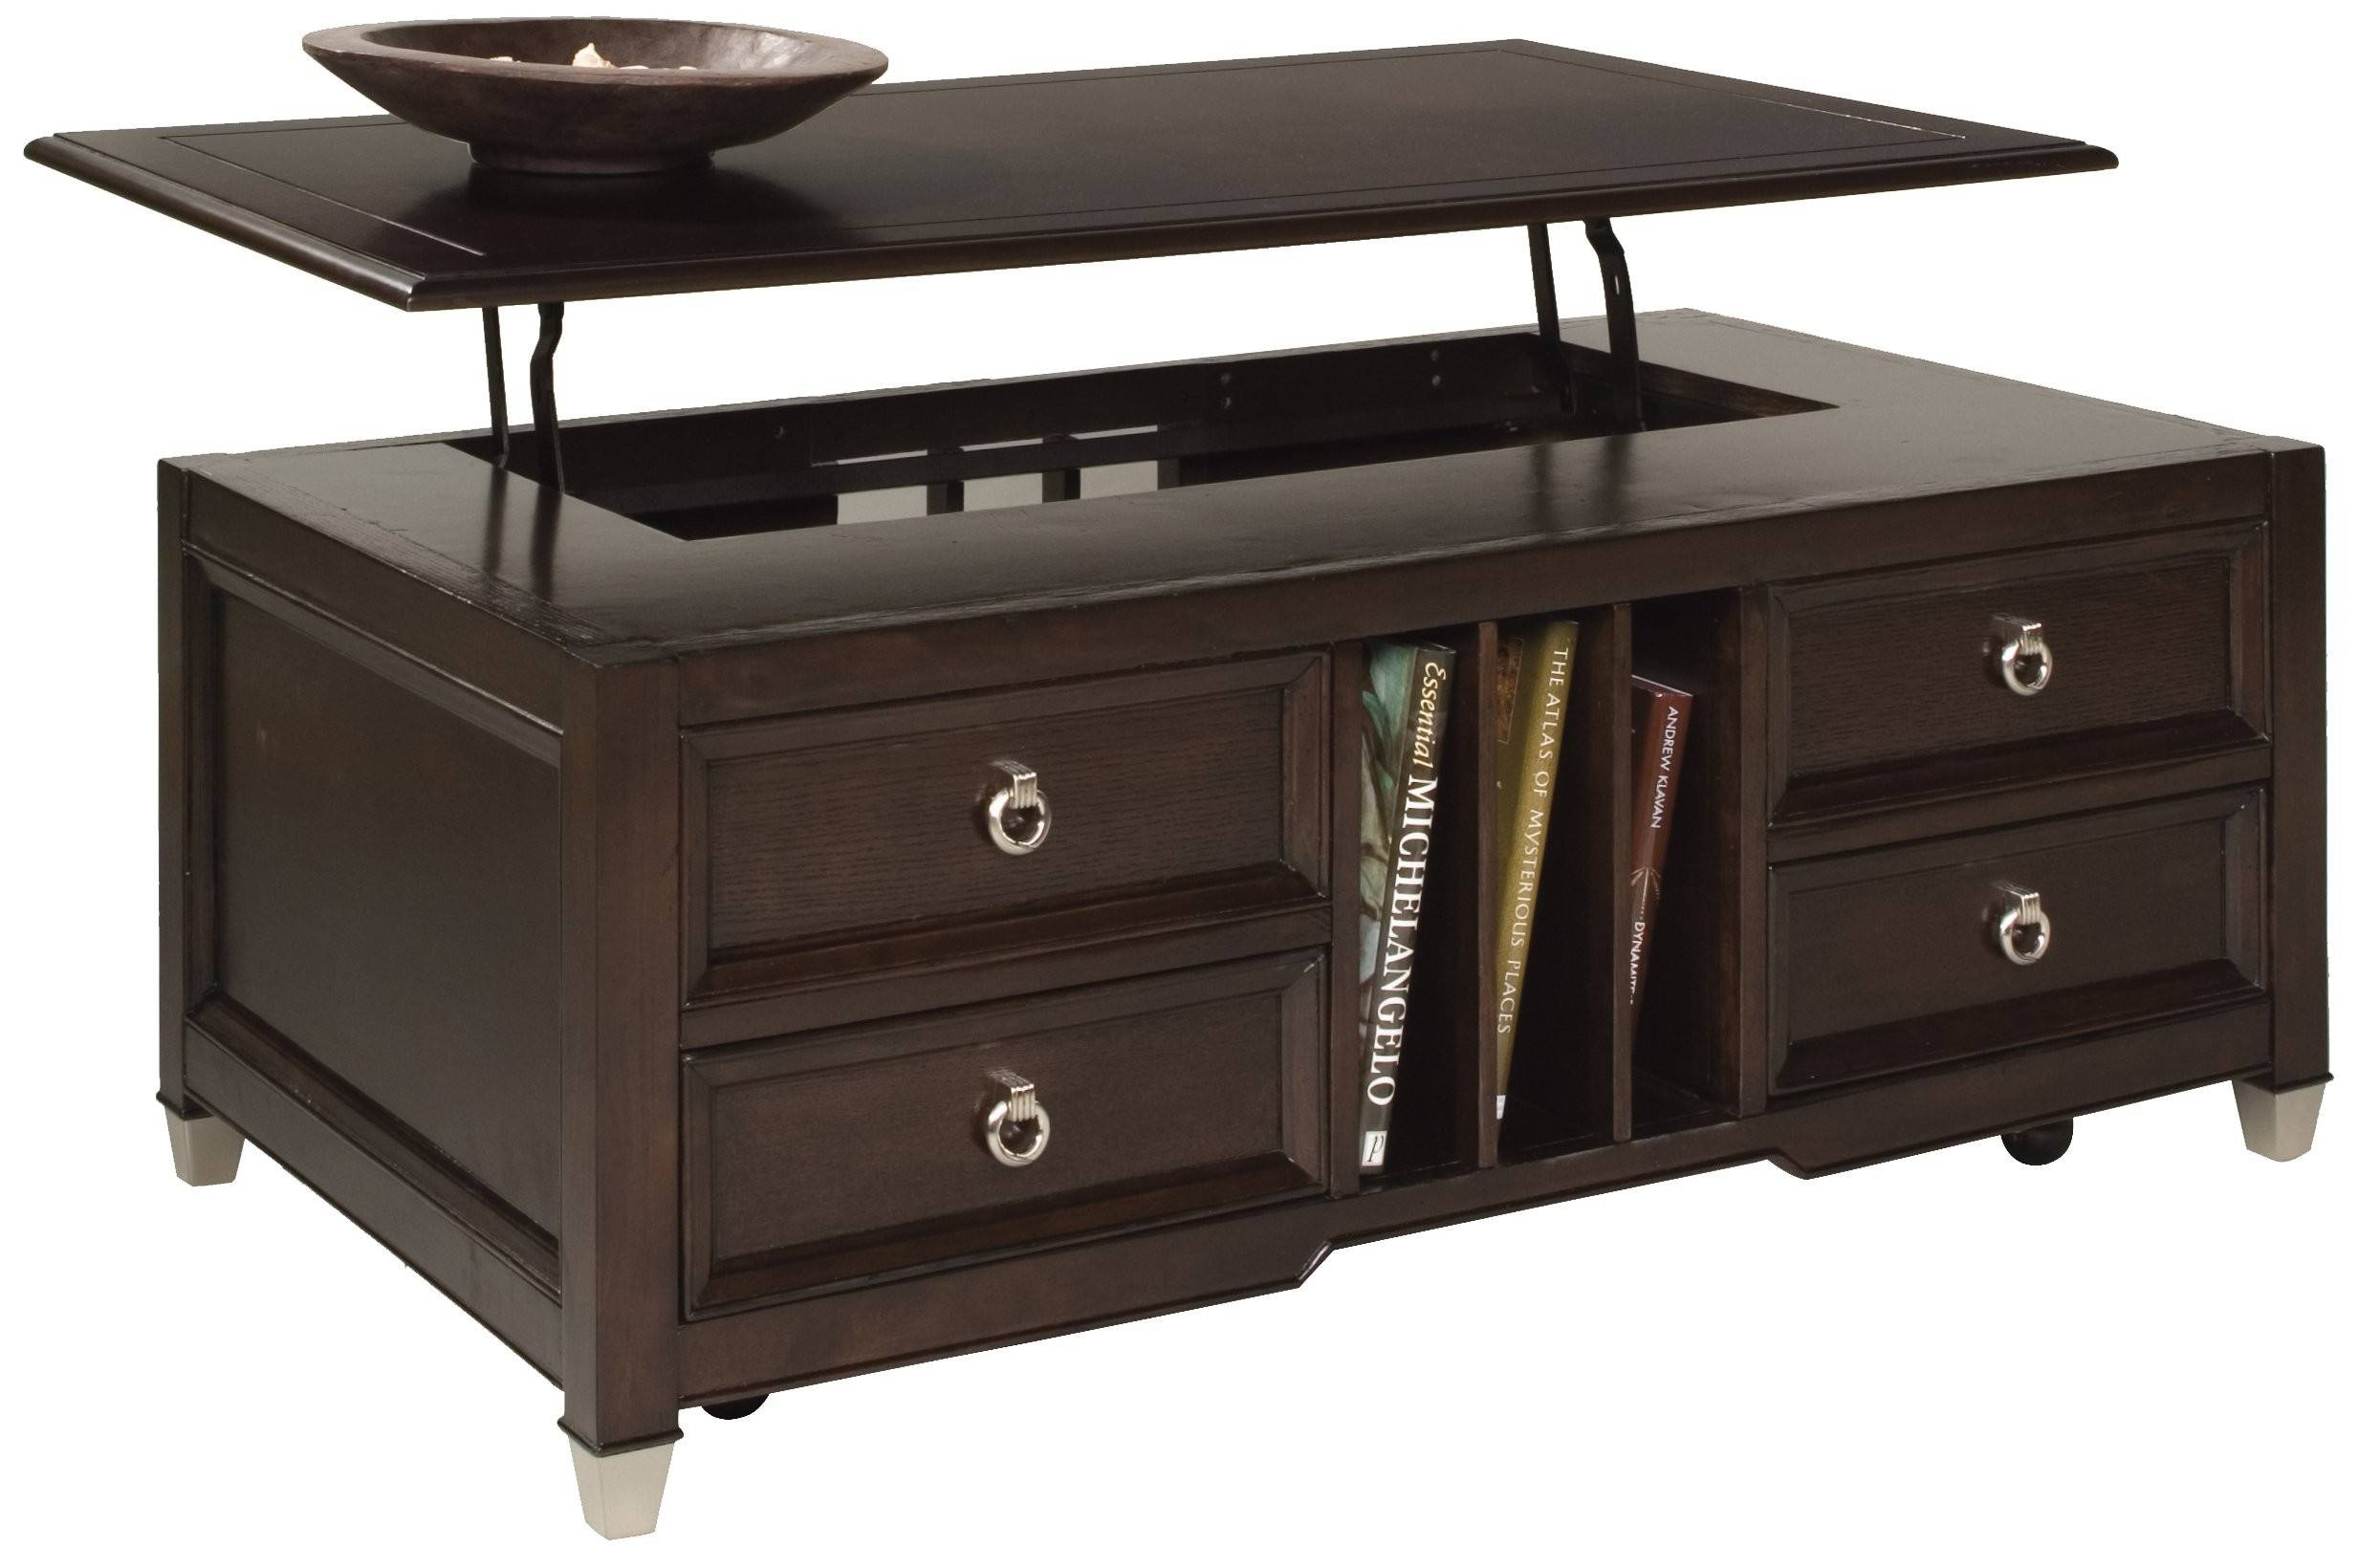 Small Coffee Tables That Lift Up | Decorative Table Decoration Throughout Coffee Tables With Lift Up Top (View 24 of 30)